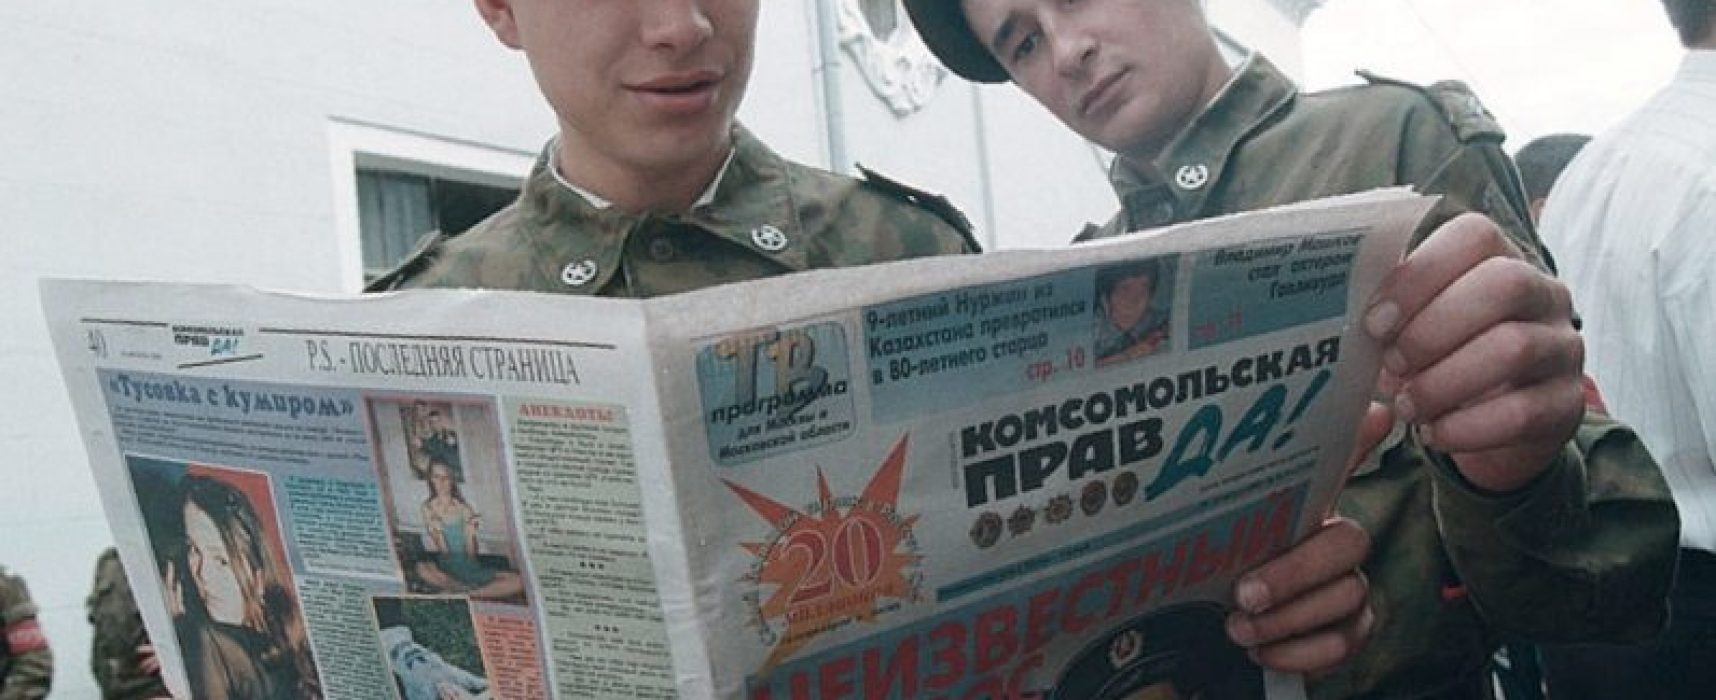 Russian Information Campaign Against Ukrainian State And Defence Forces